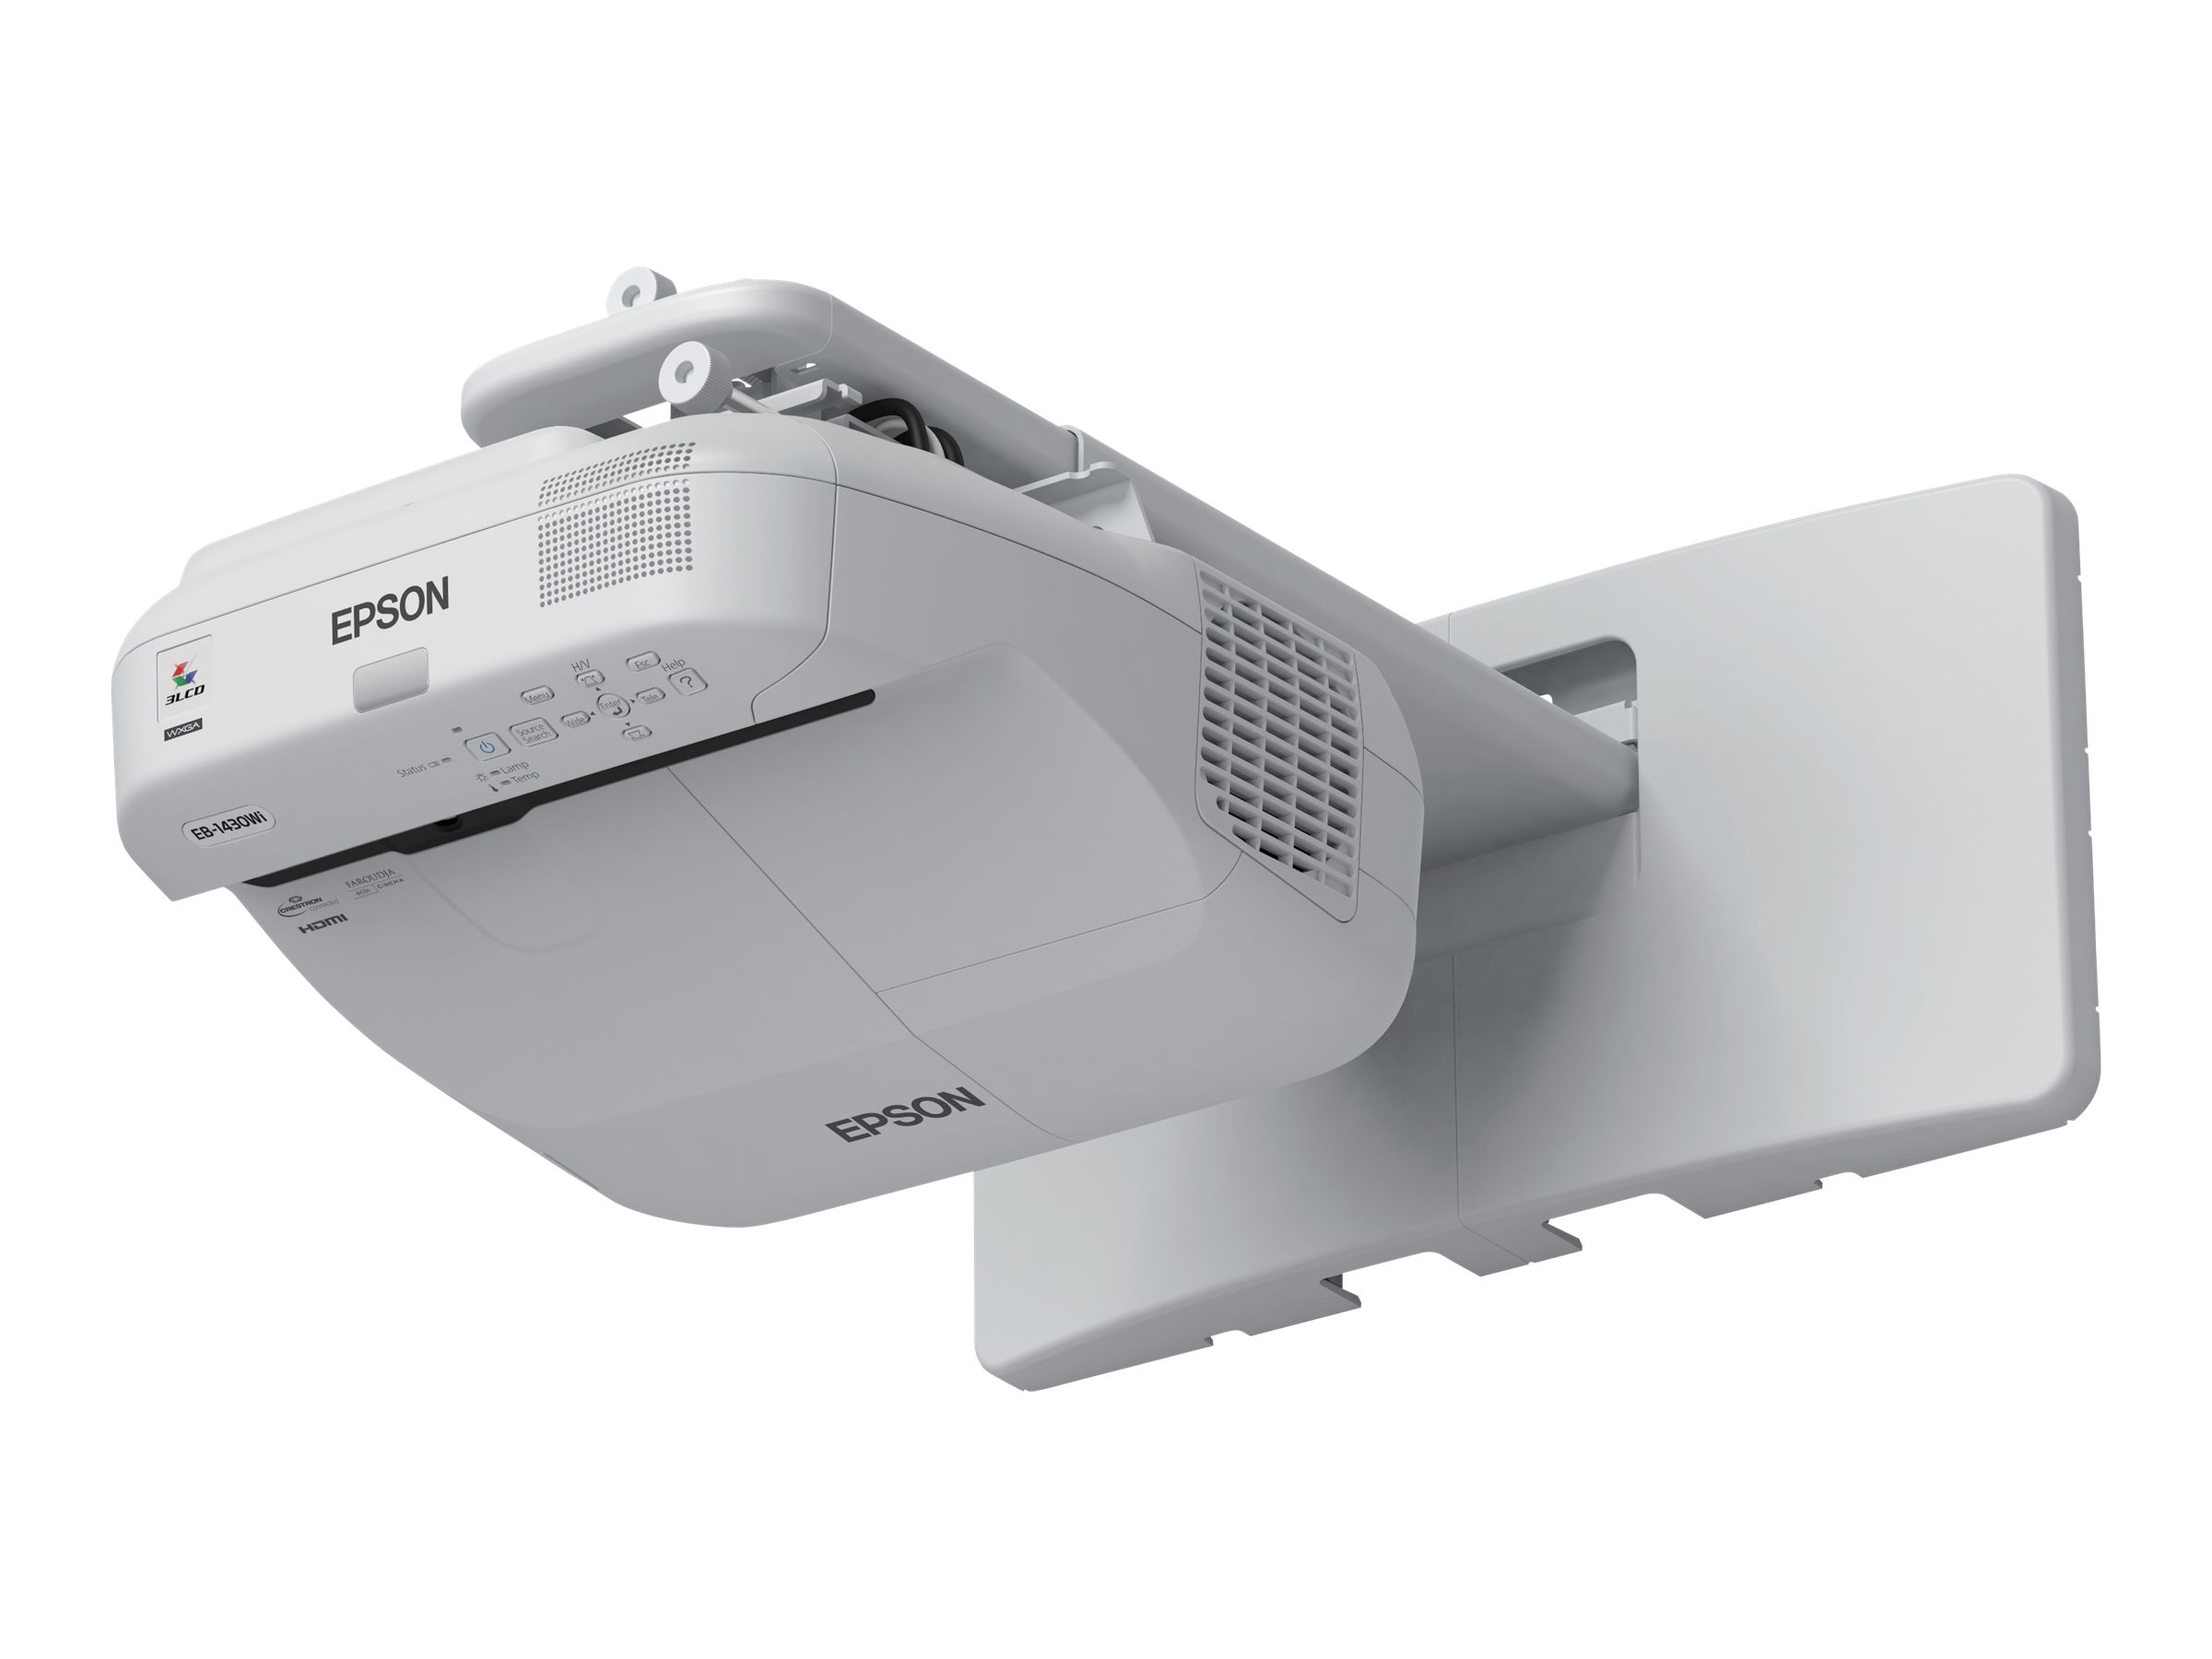 Epson BrightLink Pro 1420Wi WXGA Interactive Projector, 3300 Lumens, White with Wall Mount